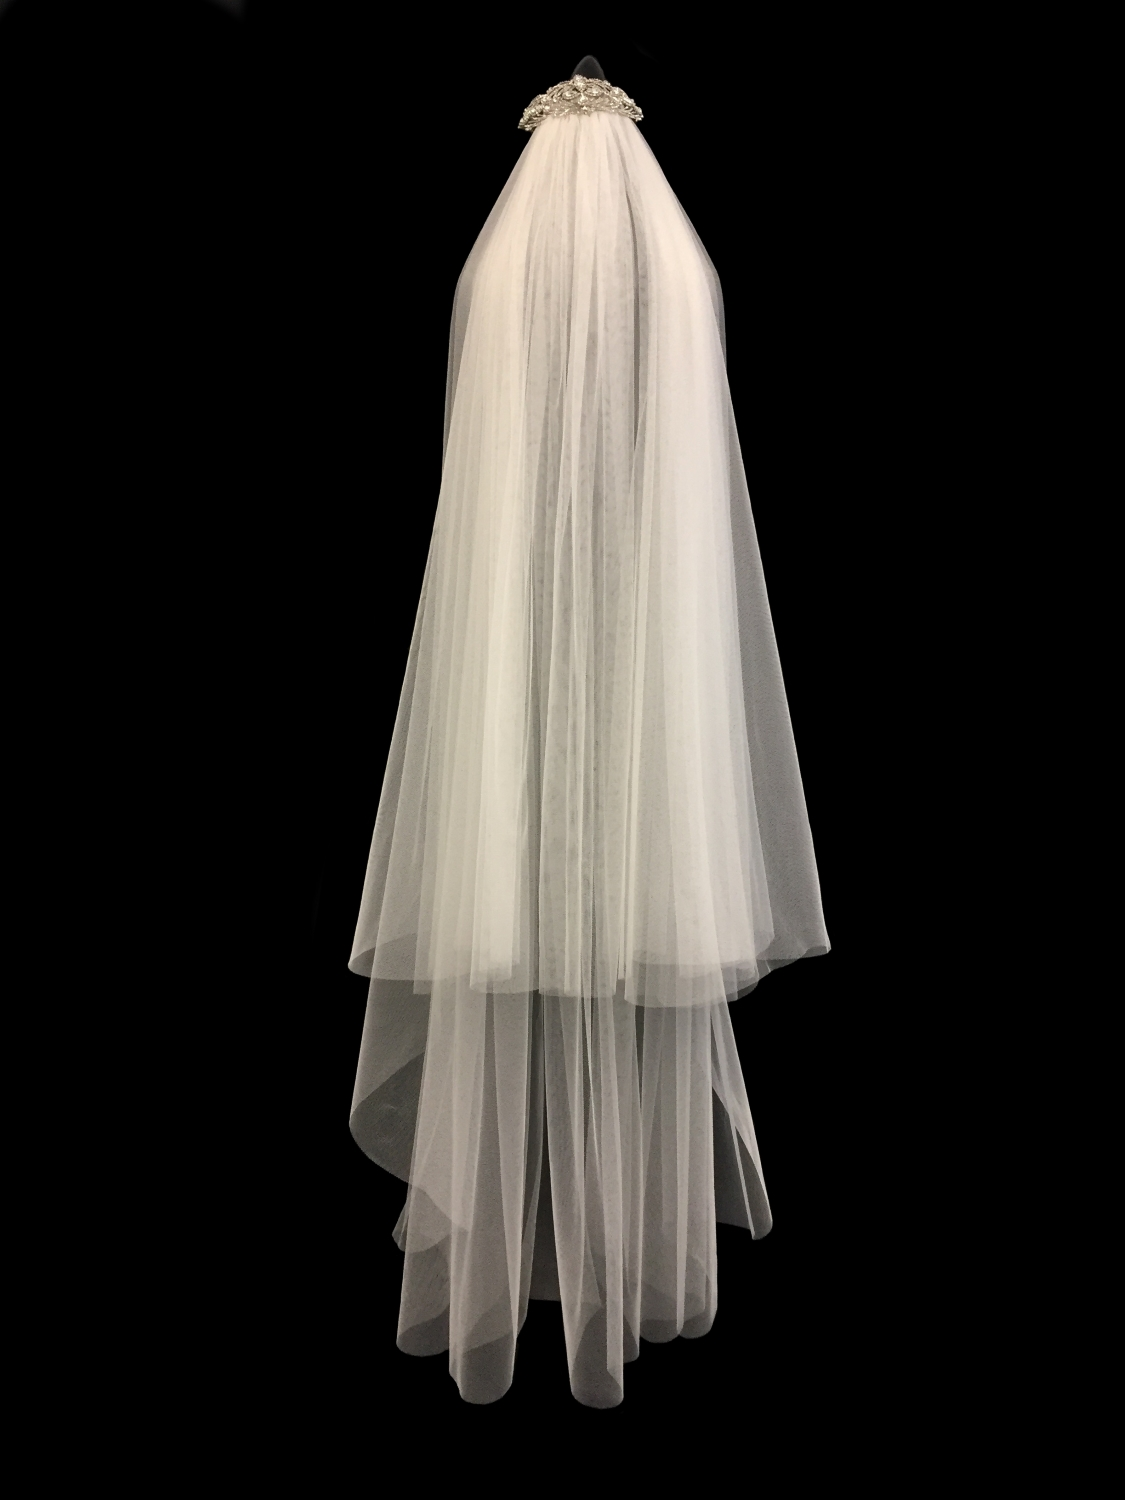 Style V5717-DI __ 42-60x120 Circle 2-Tier Faux Silk Veil